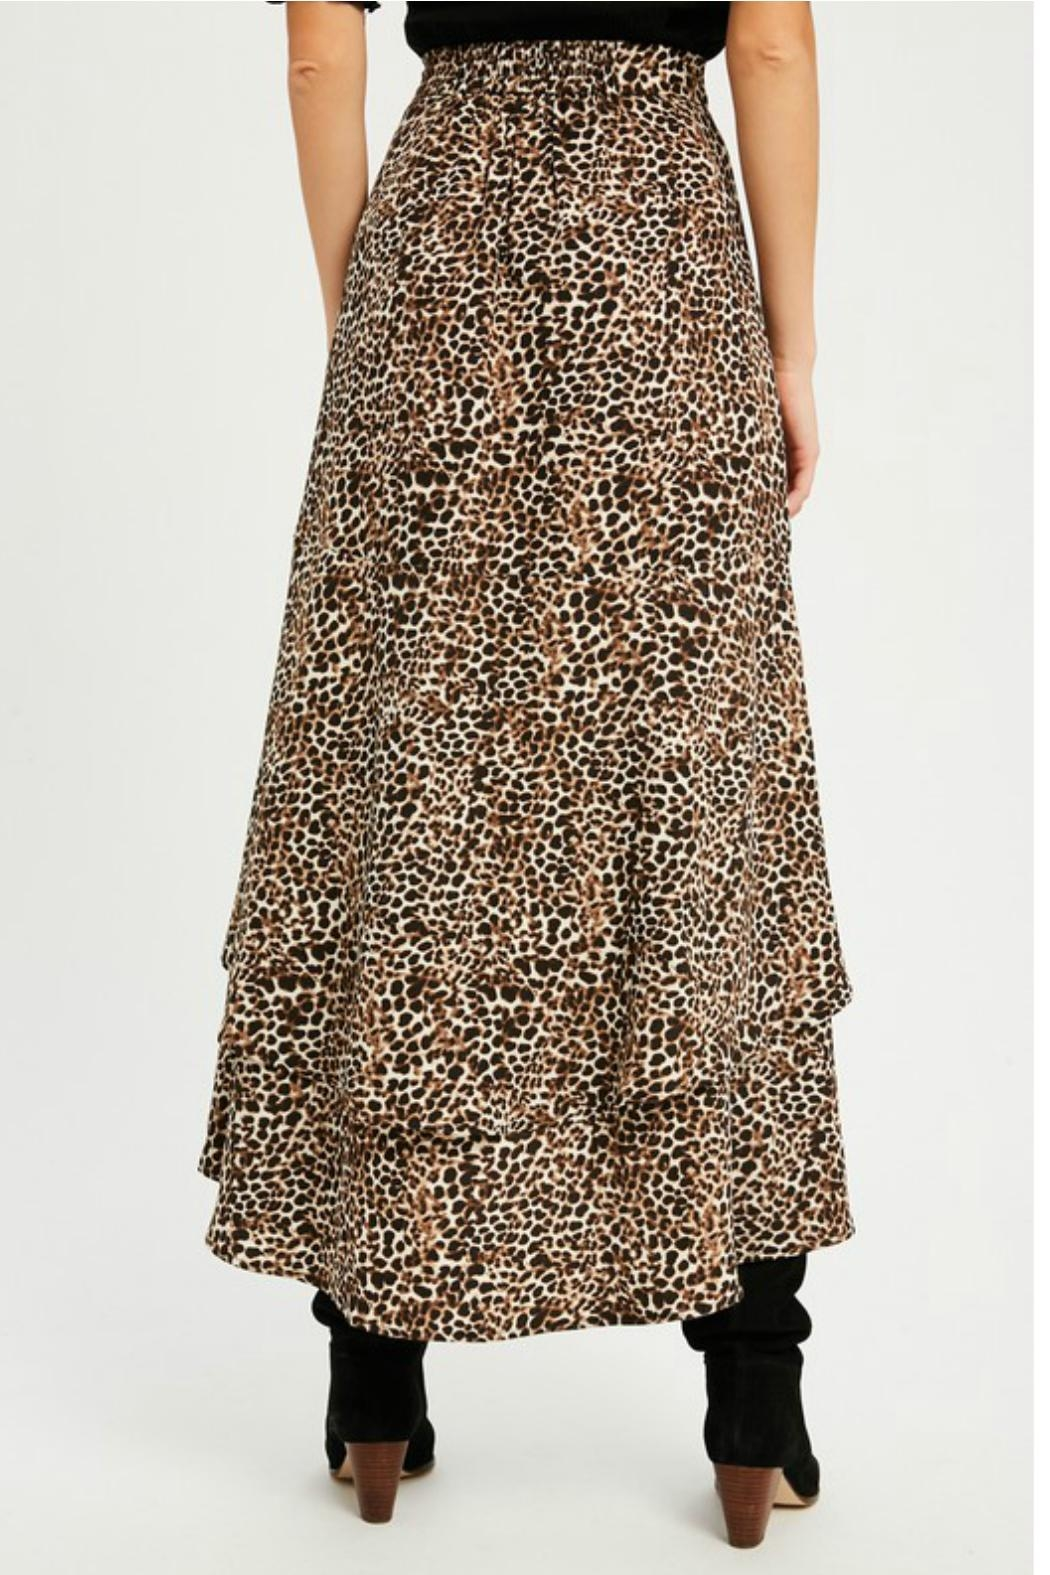 Wishlist Leopard Tiered Skirt - Front Full Image